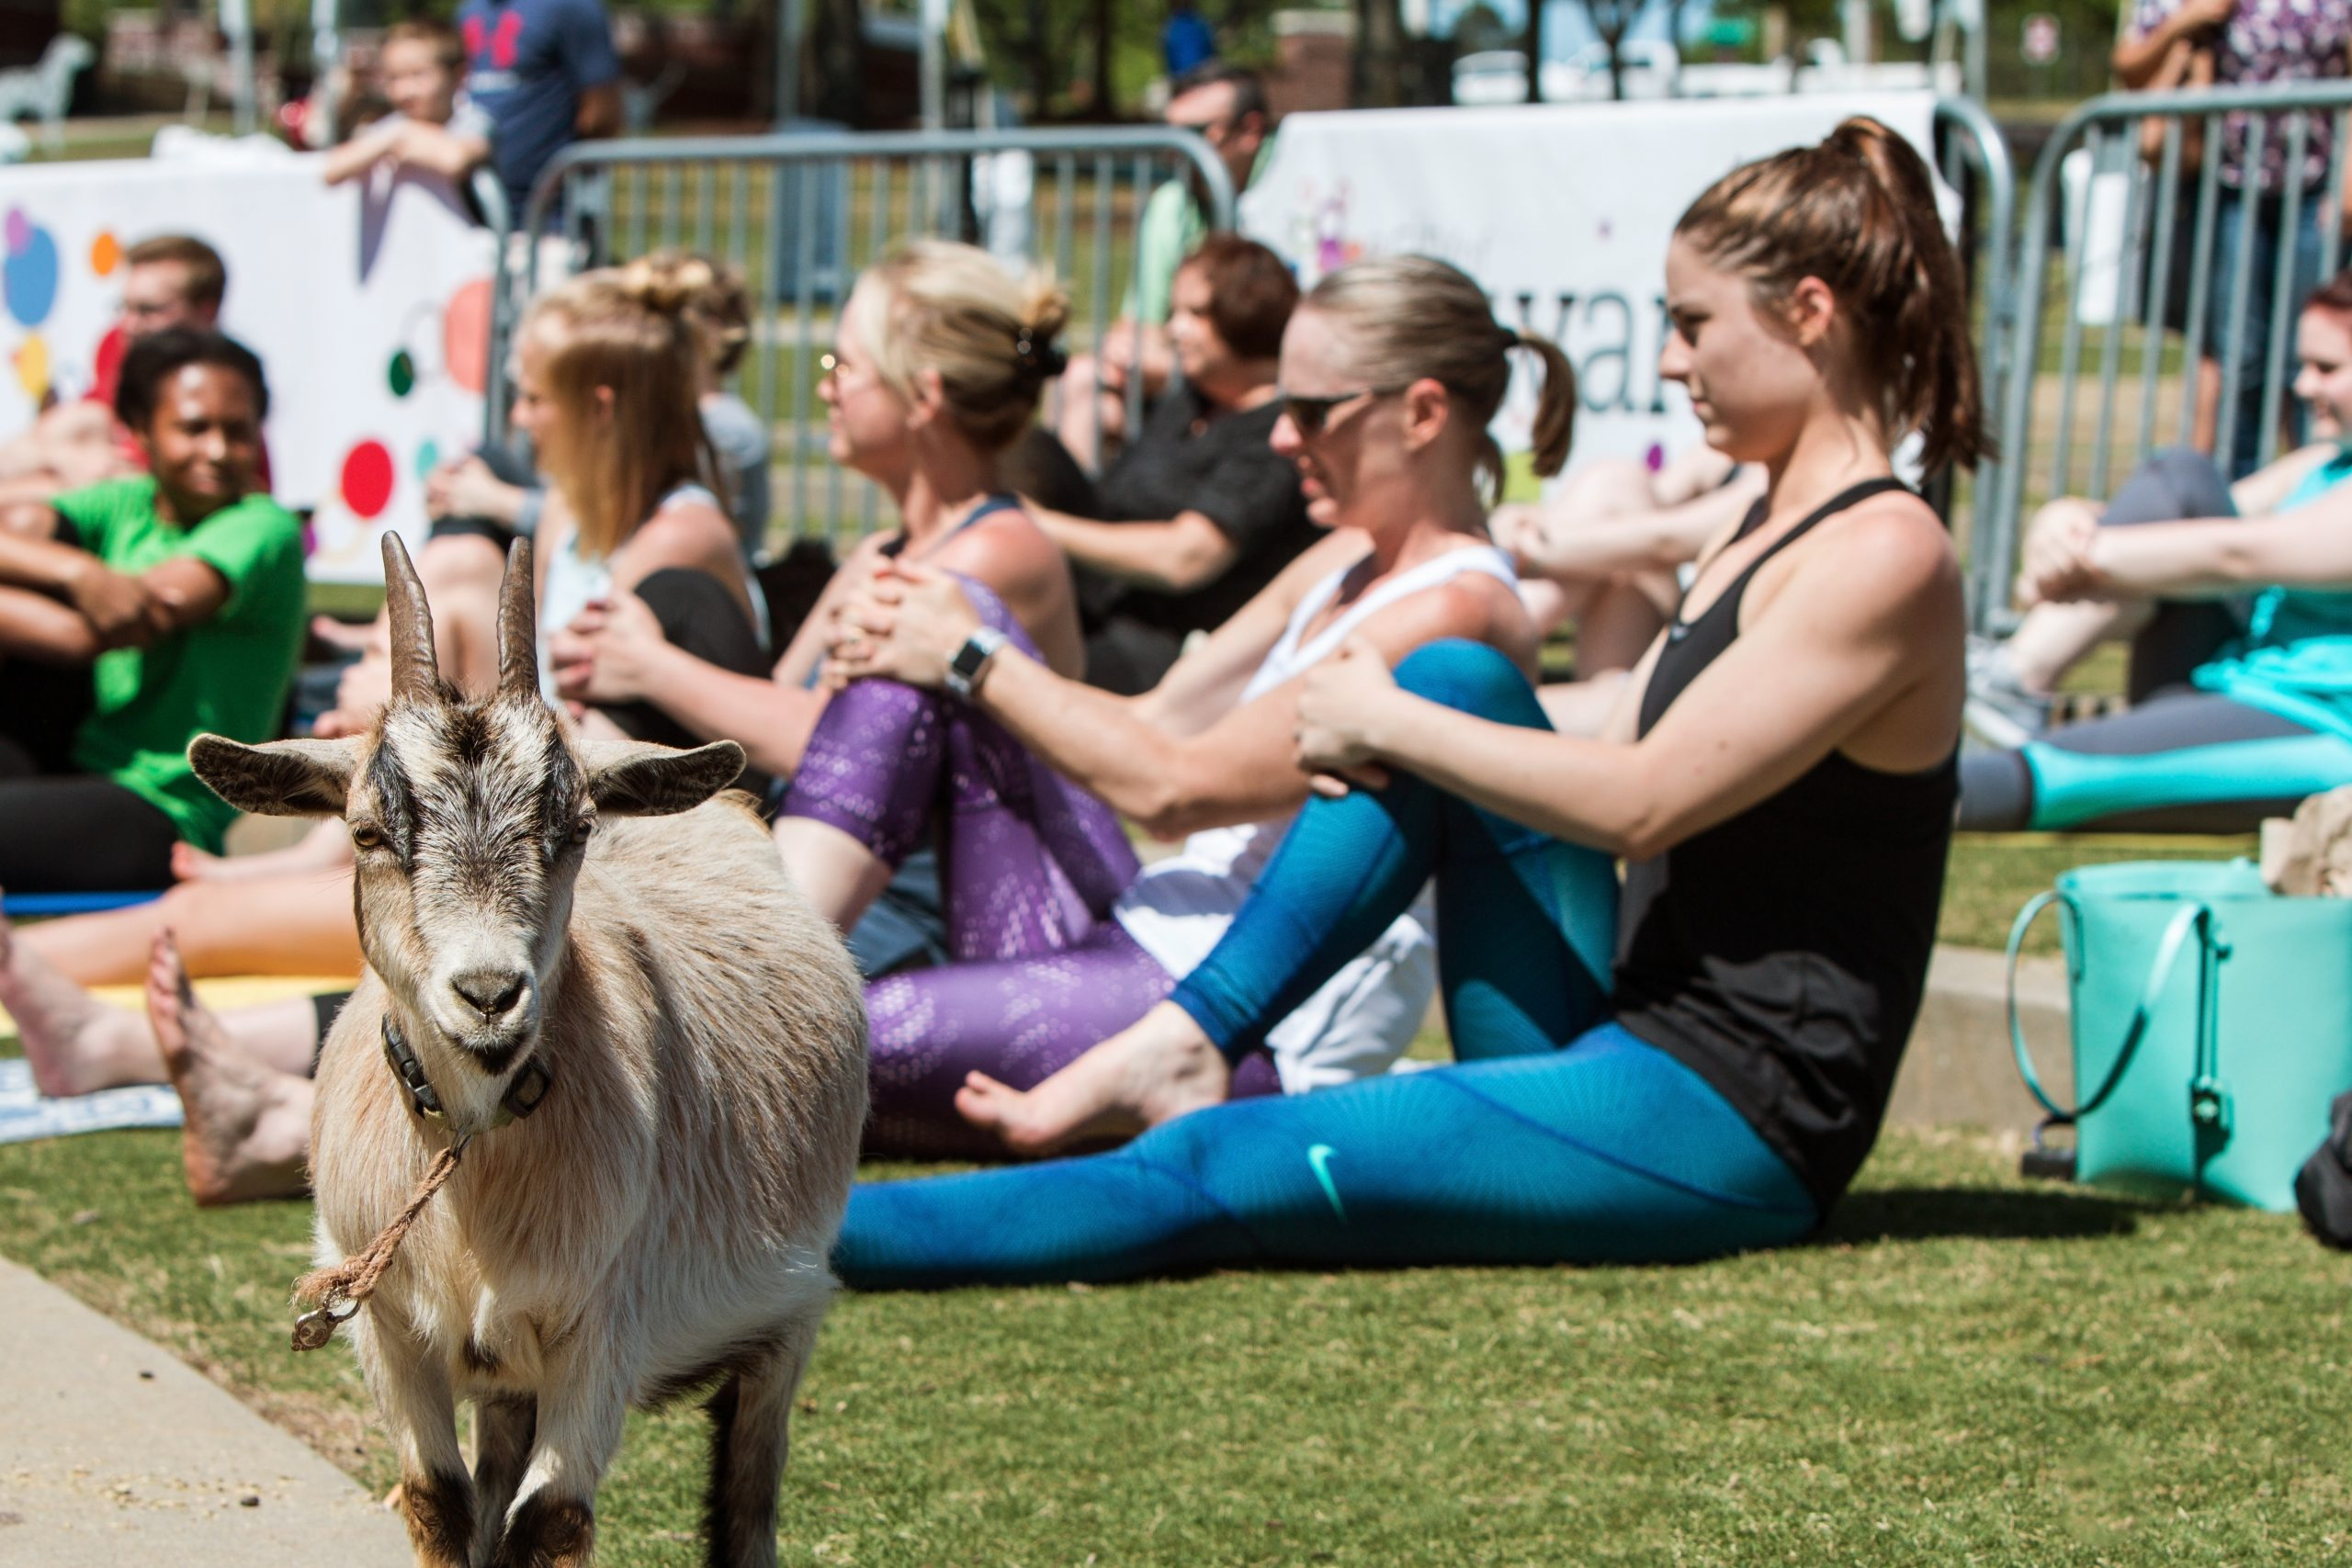 Goat Stands Among Women Stretching At Outdoor Goat Yoga Class